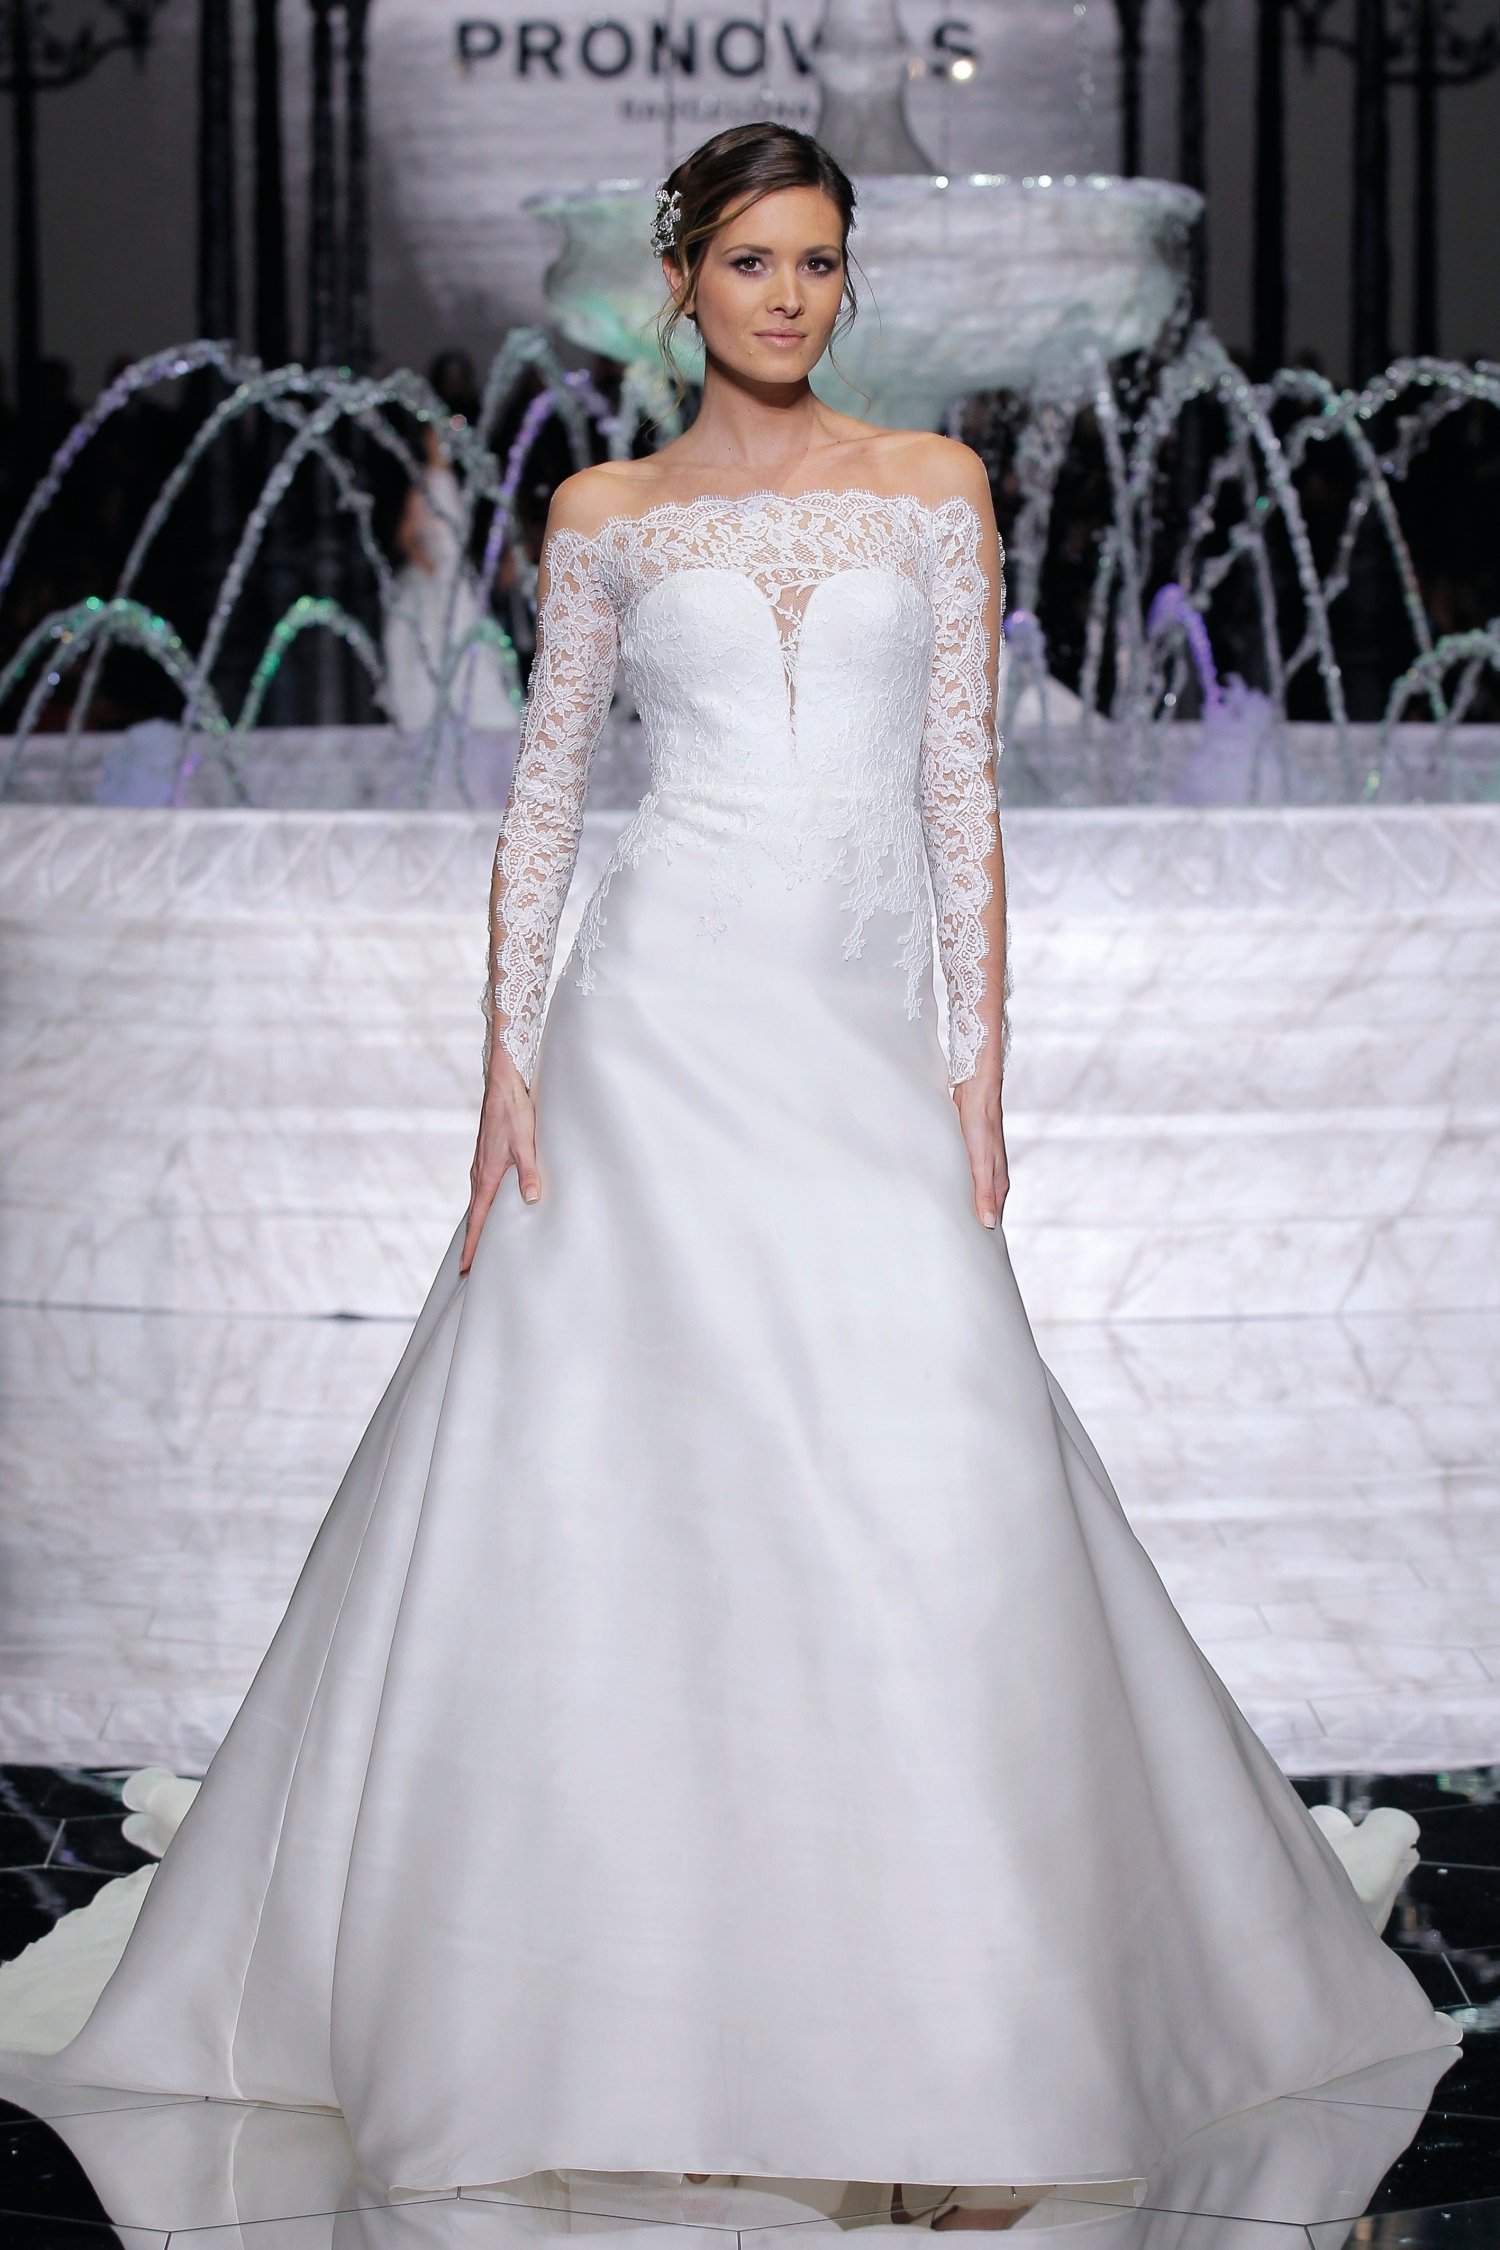 1-PRONOVIAS FASHION SHOW_Rumba